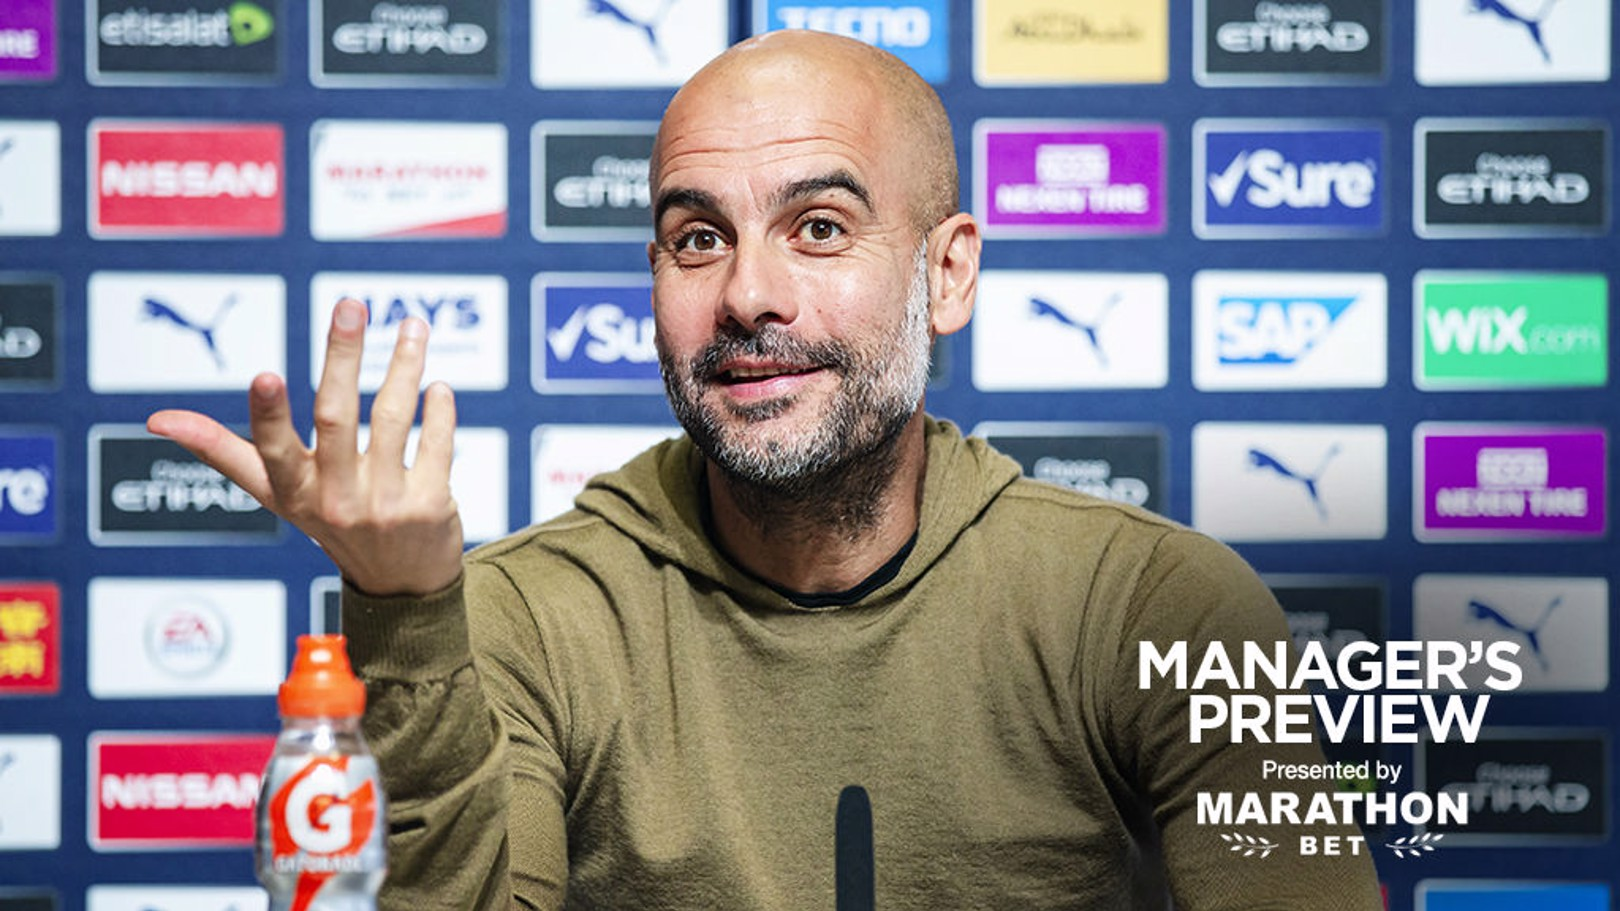 PEP TALK: Latest from the boss' press conference